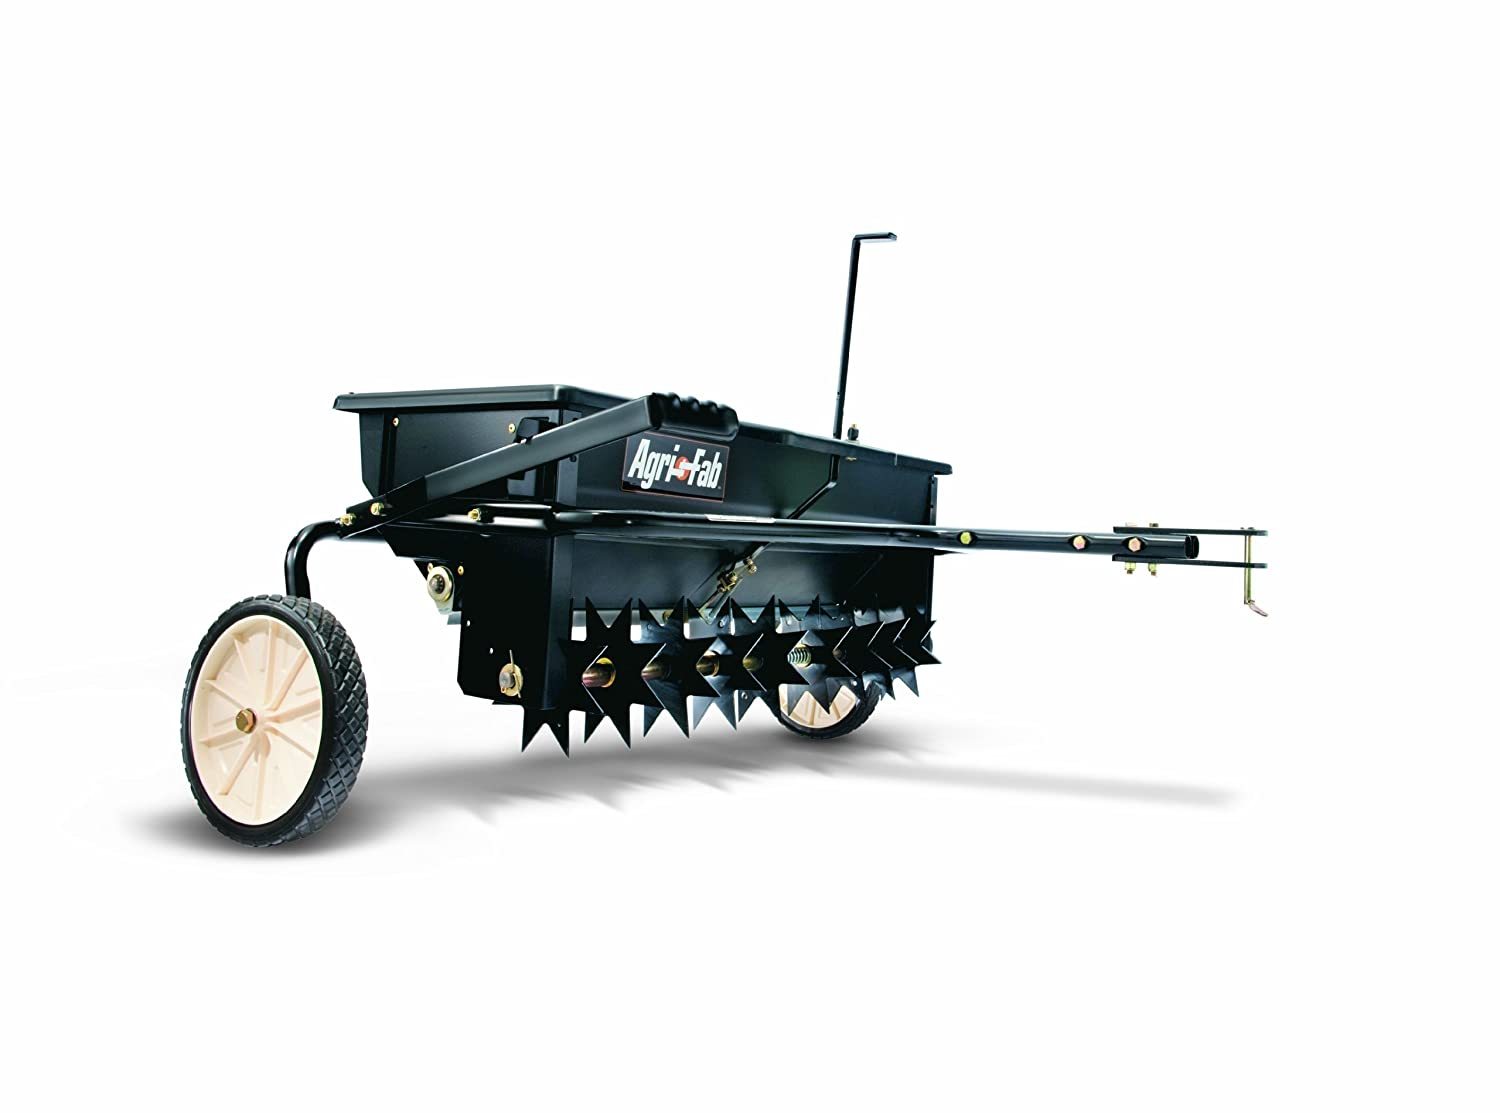 Agri-Fab 45-0309 10-Gallon Spiker/Seeder/Spreader, Black Agri-Fab Inc